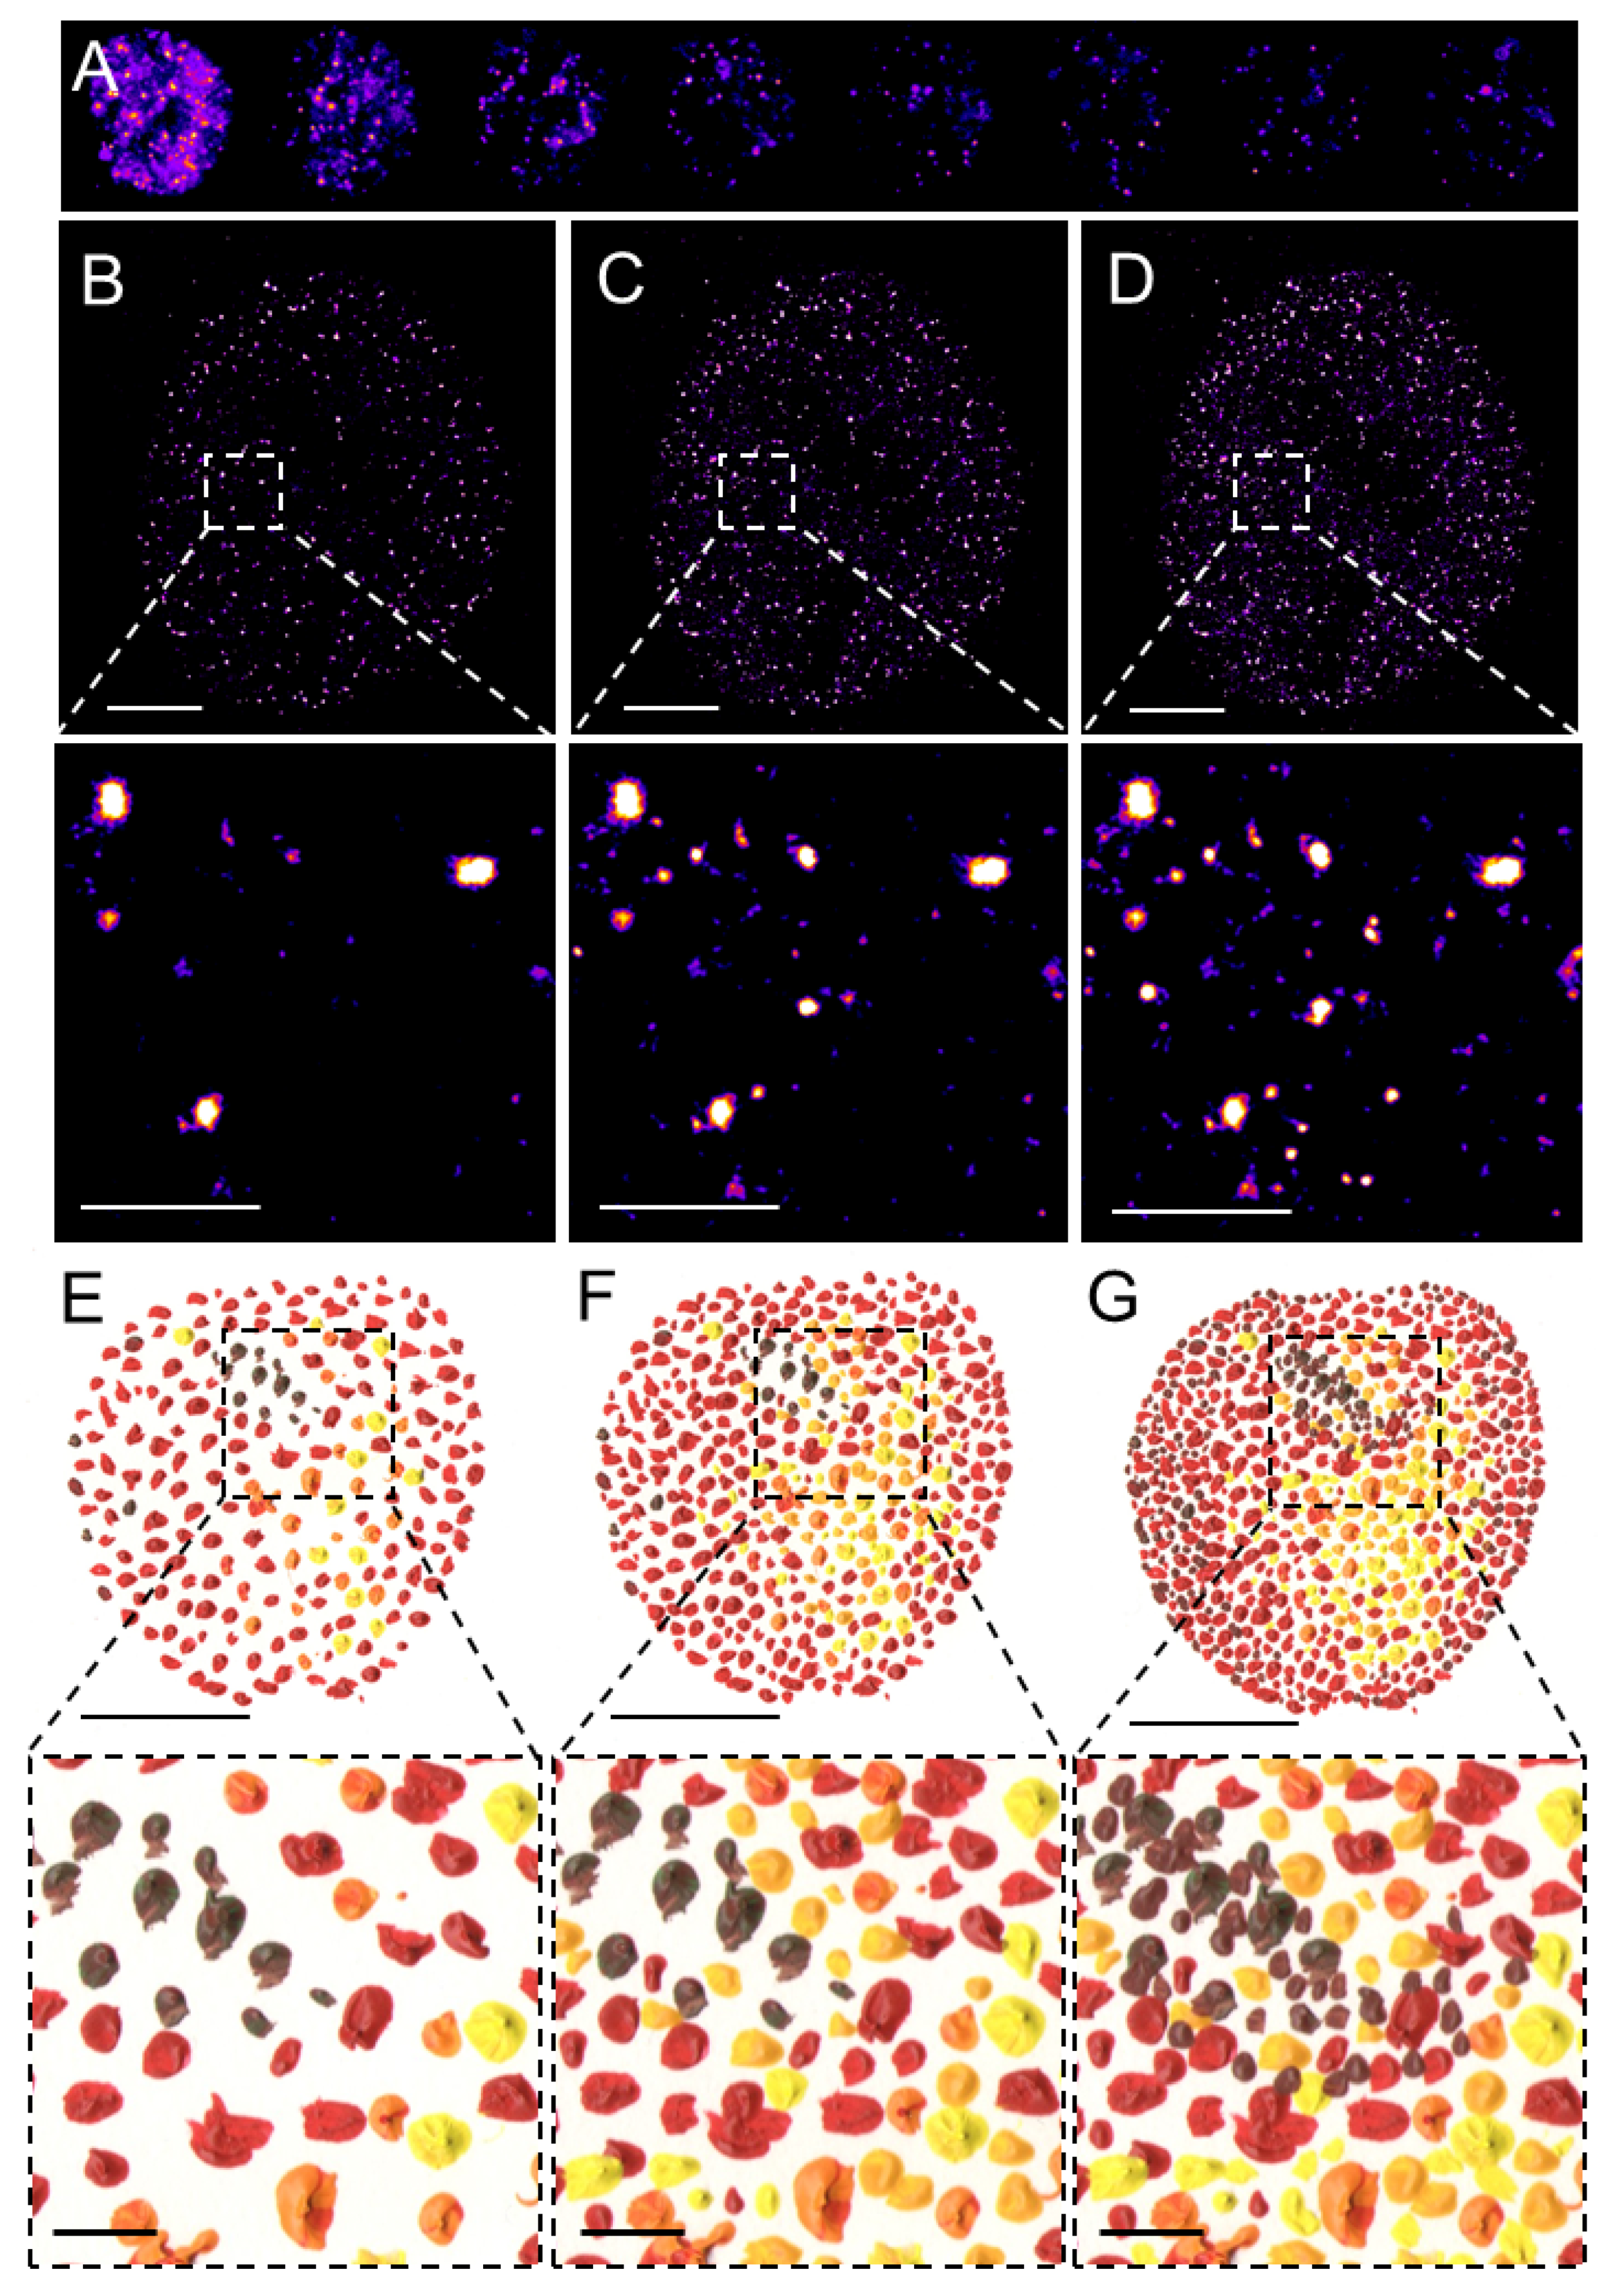 Pointillistic nature of single-molecule localization microscopy. (A) Individual frames from the time-lapse acquisition of raw blinking of Alexa Fluor (AF)647-labeled secondary antibody against primary anti-RNAPII antibody (RNAPII-AF647). The signal of individual AF647 molecules accumulates in time (B,C) to create the final dSTORM image of RNAPII (C). The imaging process in (B–D) resembles an artistic painting style called pointillism in which the accu-mulation of color spots on a canvas (E,F) creates the final painting (G). Artistic paintings in (E–G) were kindly provided by Katarína Mrvová. White bar = 5 µm; inset 1 µm. Black bar = 5 cm; inset 1 cm.